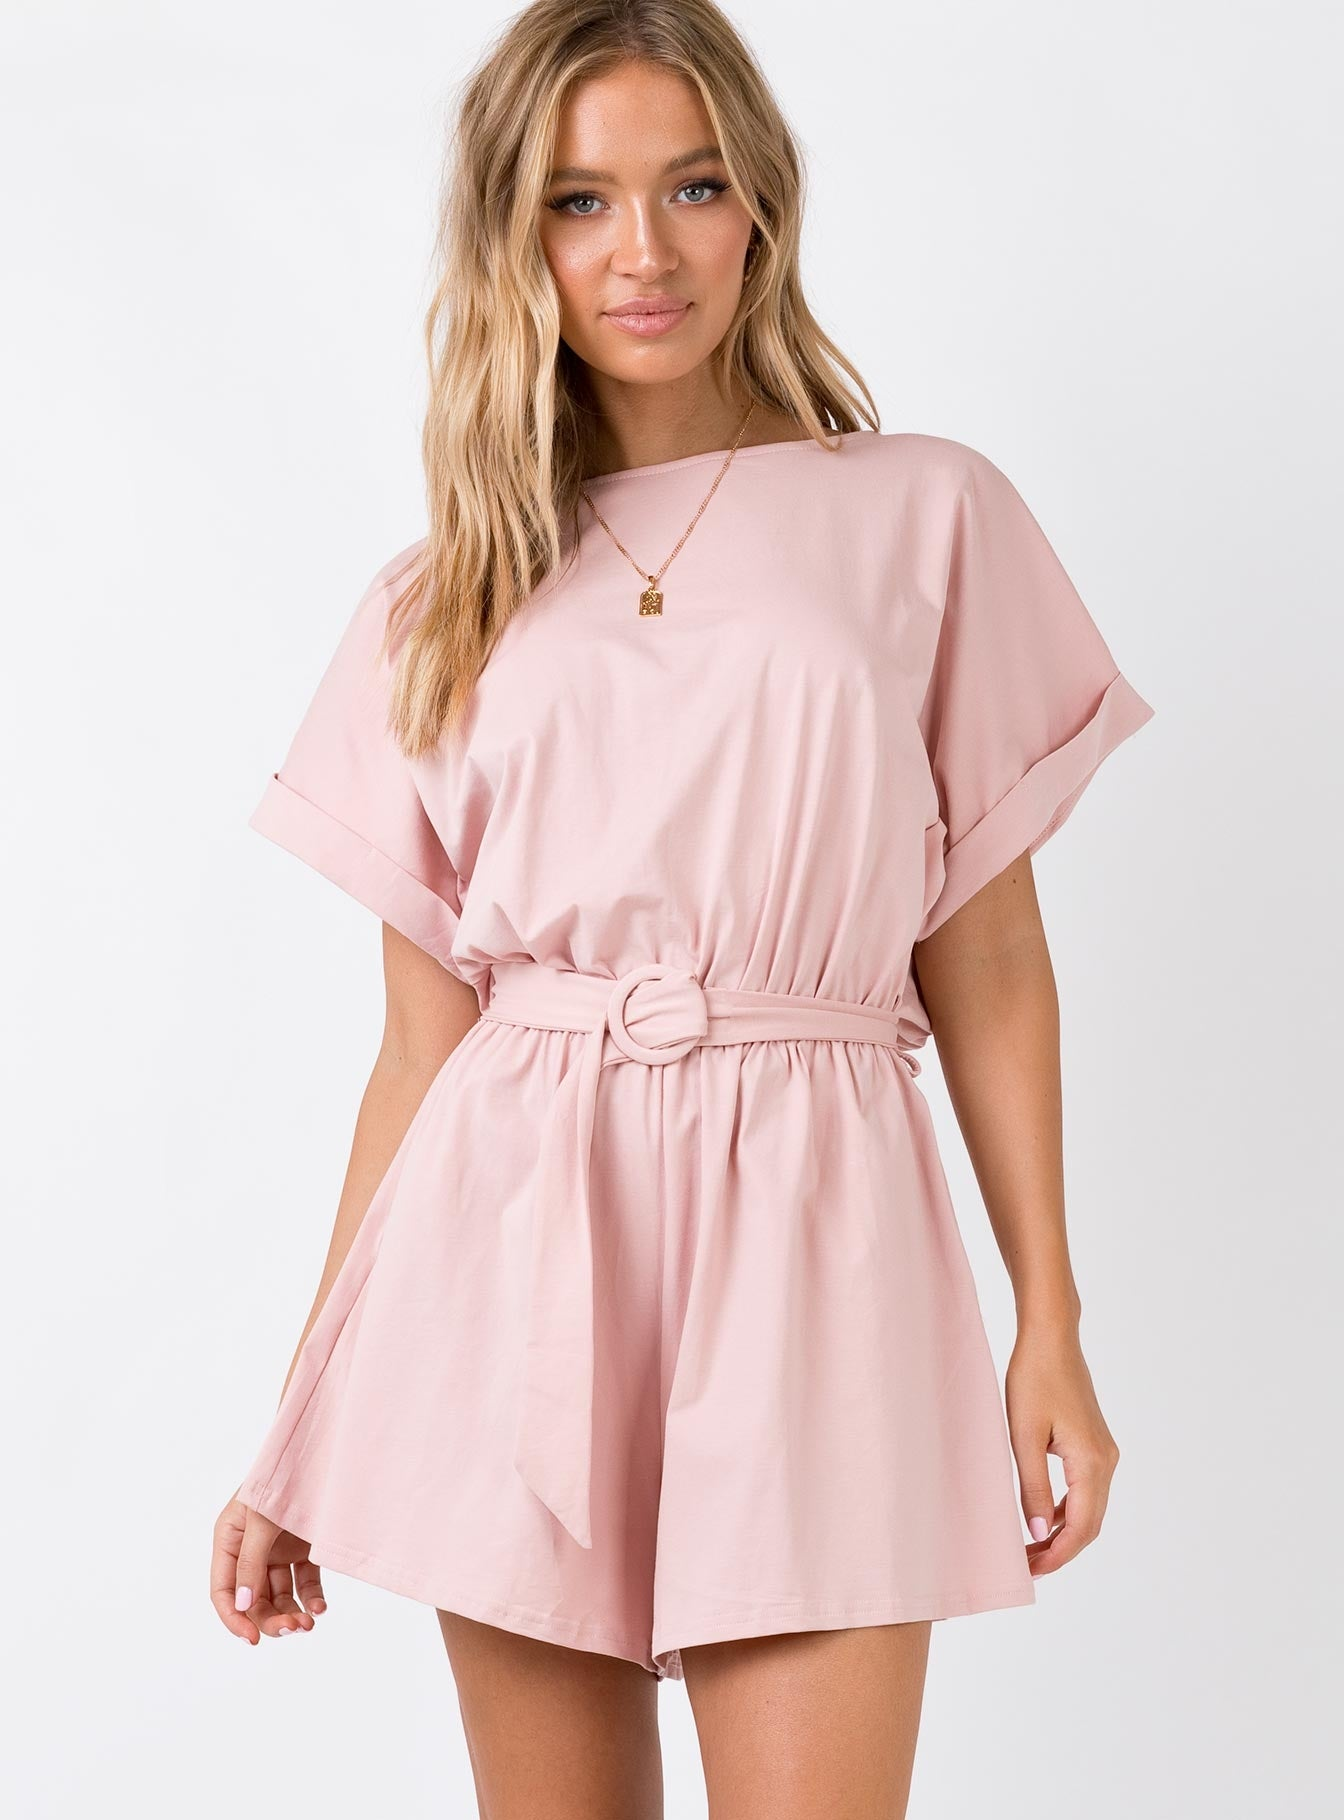 The Tusk Playsuit Pink